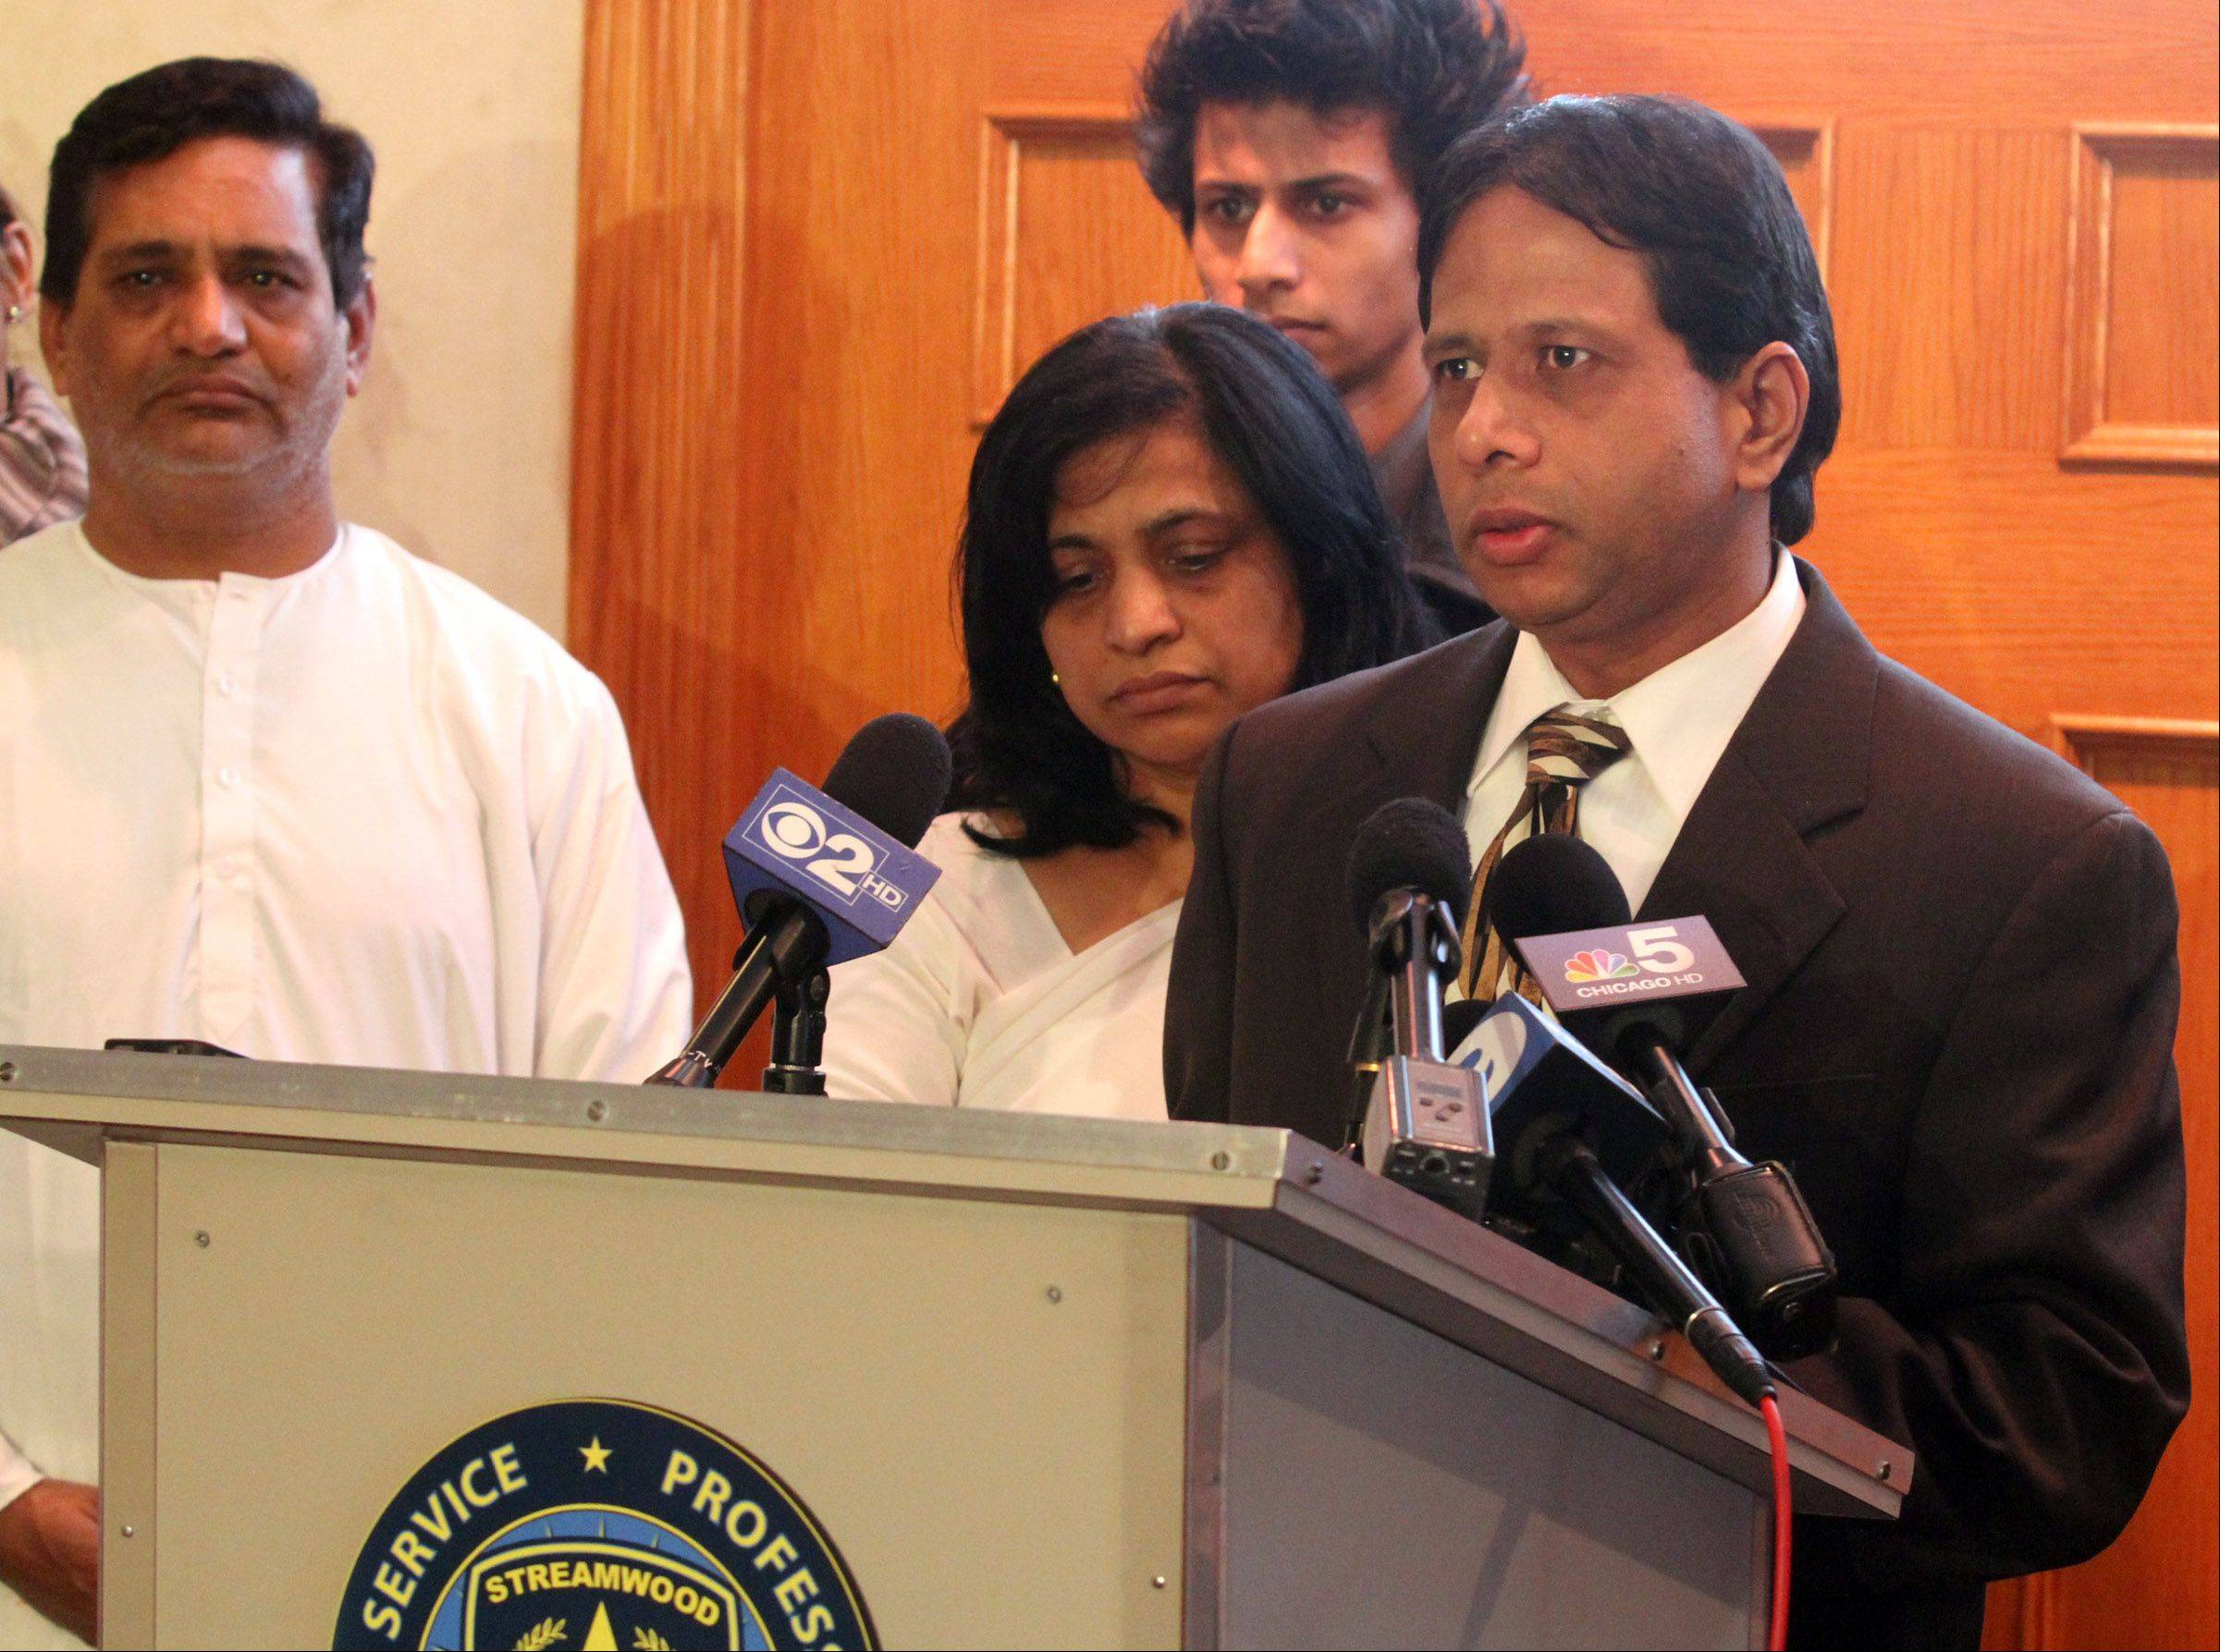 Ashwin Jayswal, the uncle of Anandkumar Jaiswal, speaks during a news conference Tuesday at which police announced an increase in the reward for information that may help find the person responsible for the Streamwood man's murder Saturday during a robbery.